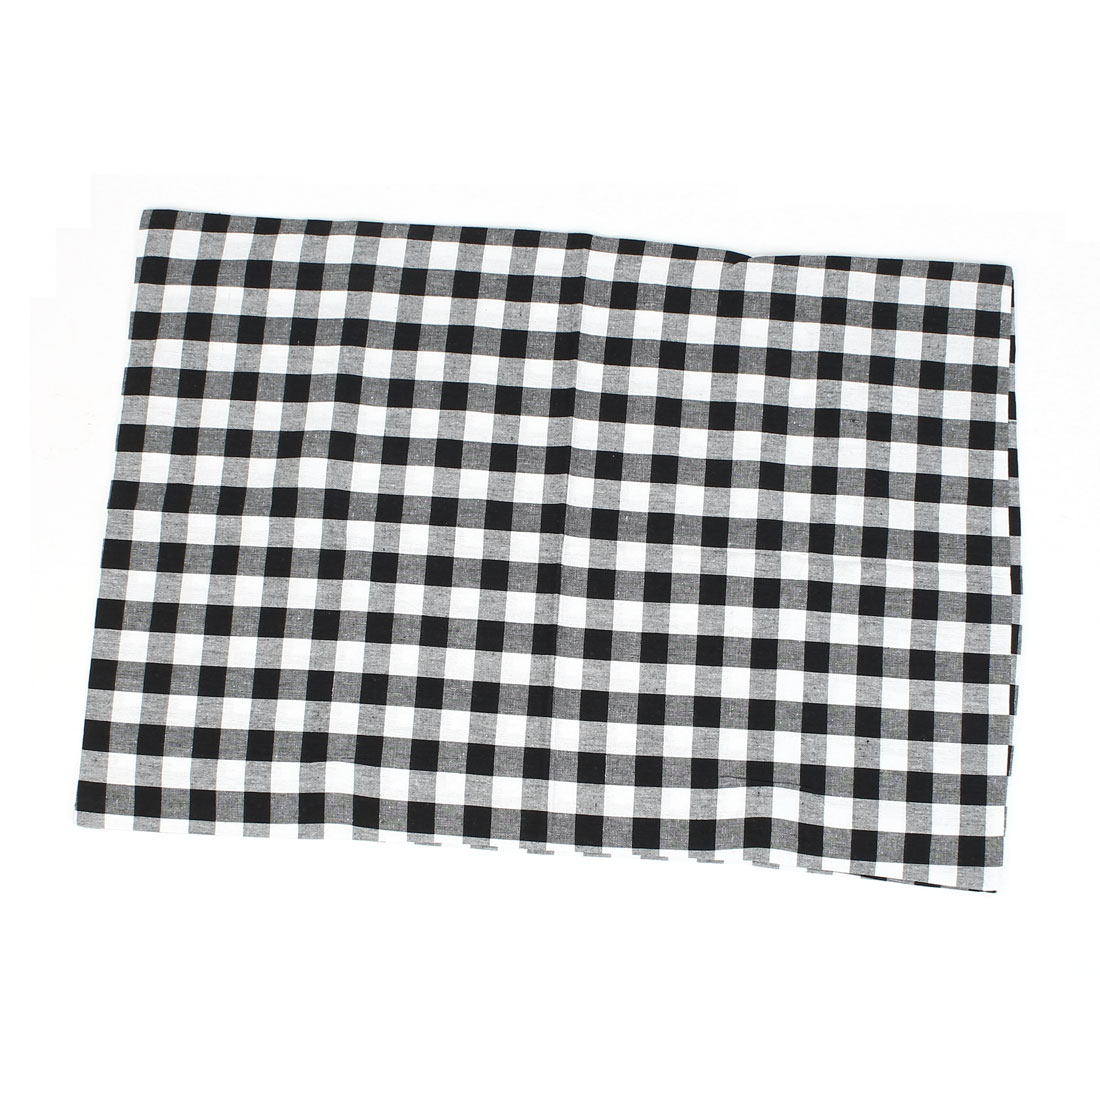 Black White Grid Pattern Cotton Pillow Case Cushion Cover 67 x 47cm